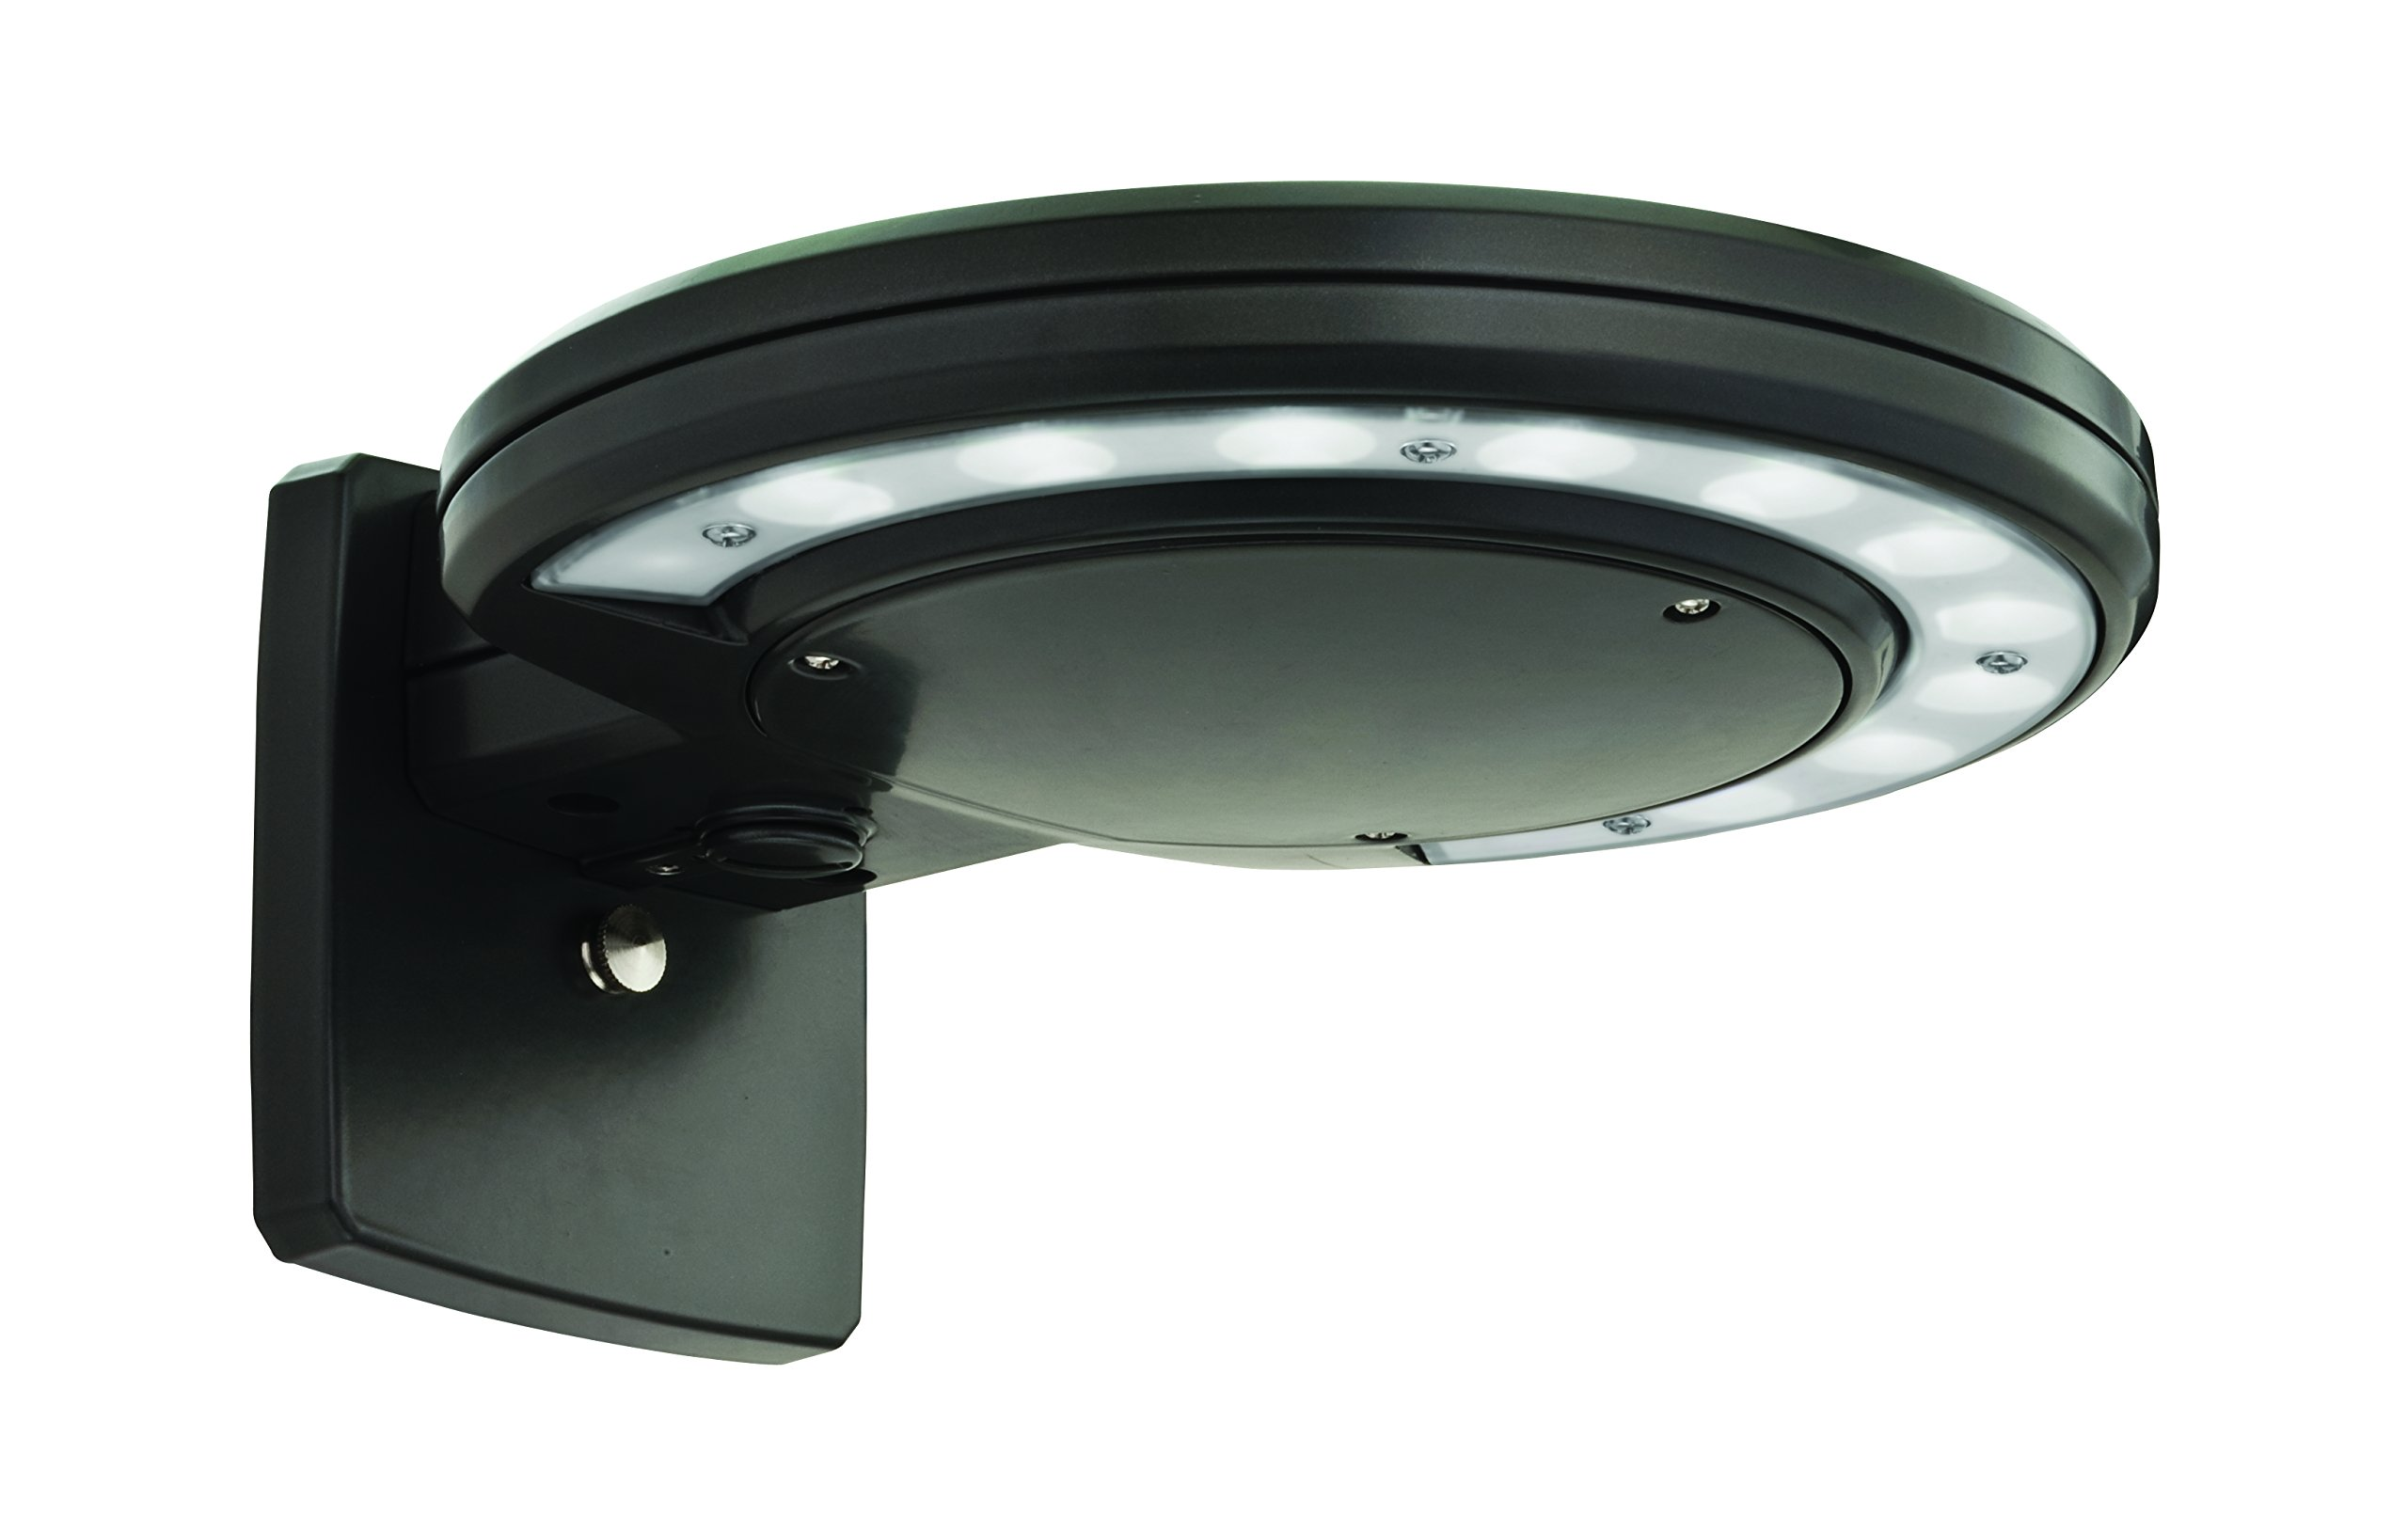 Lithonia Lighting OLAW23 53K 120 PE BZ M2 LED Outdoor Wall Pack Area Light, Black Bronze